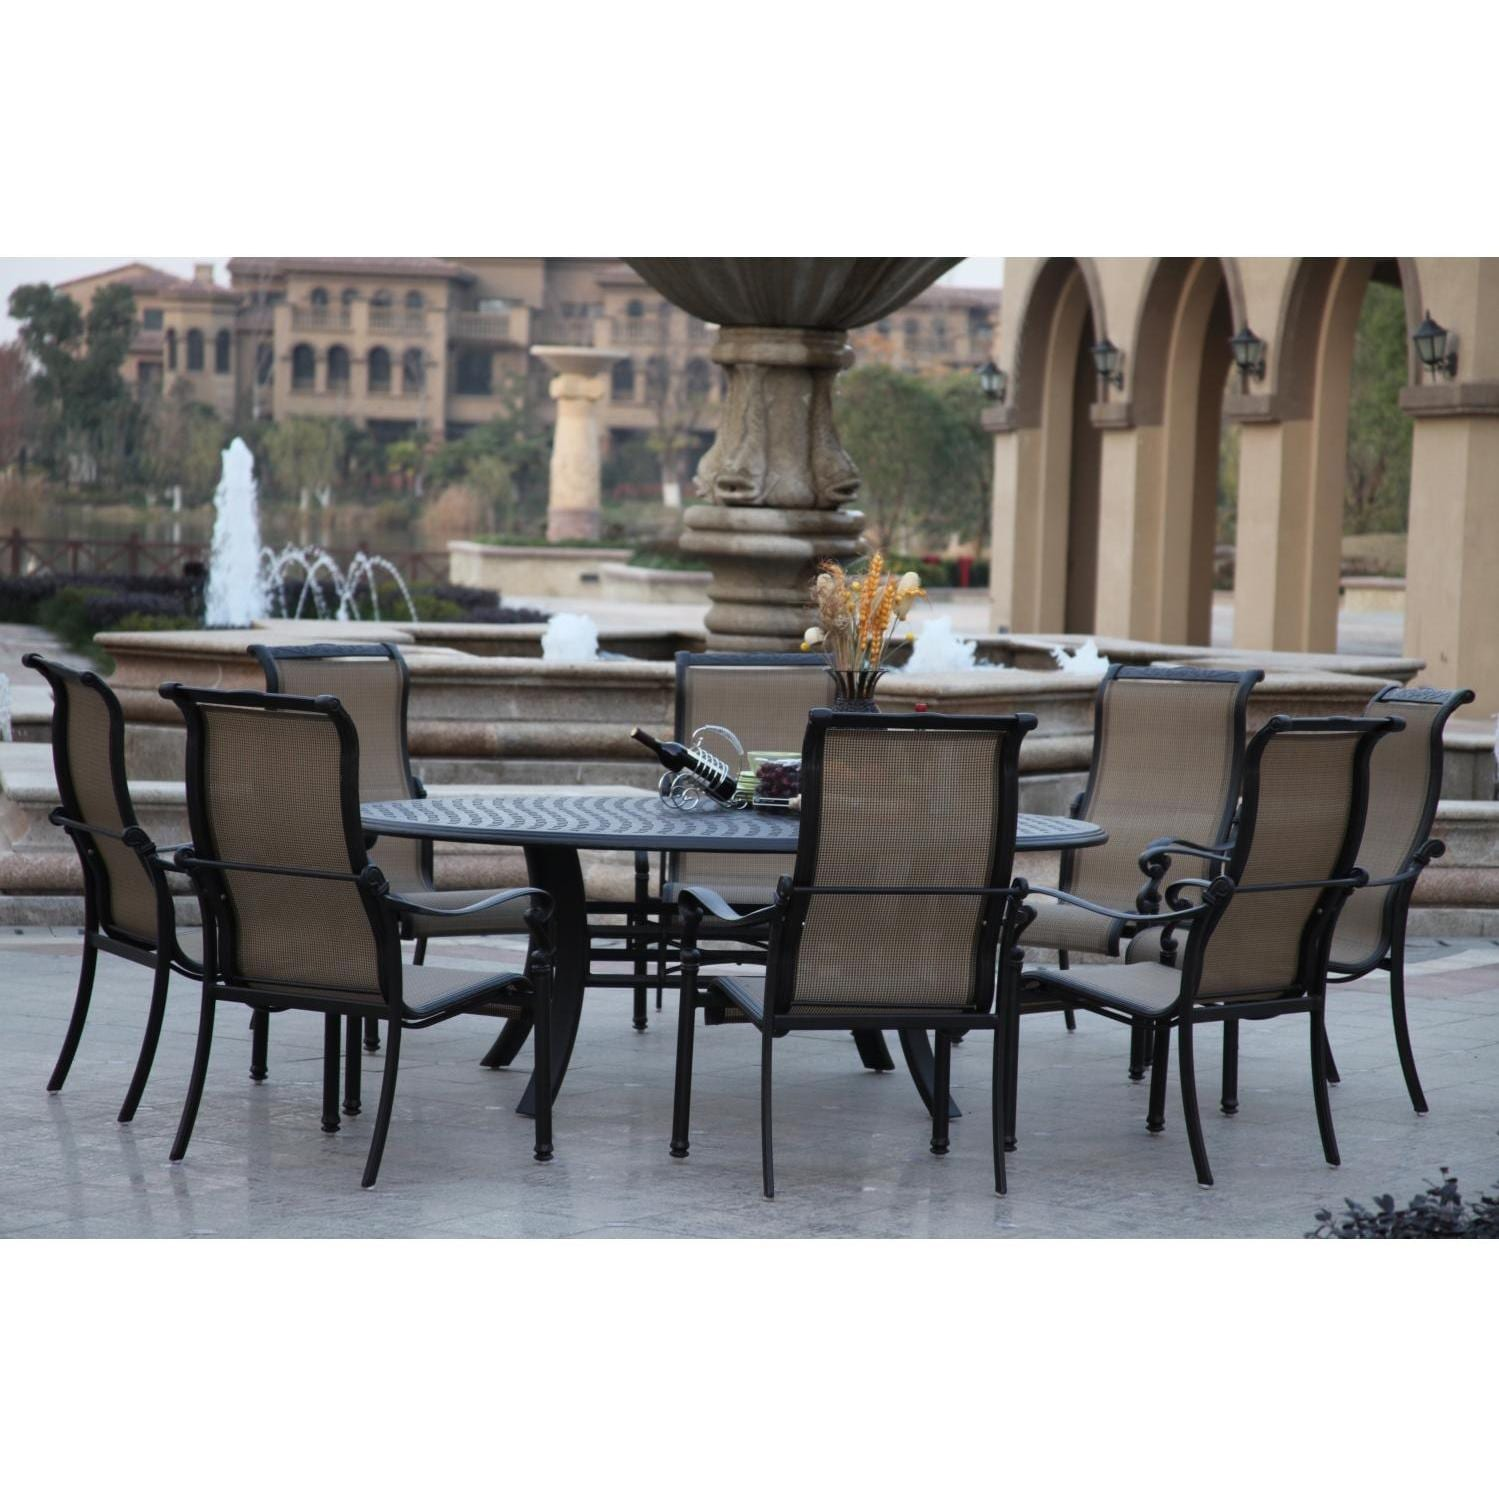 Darlee Monterey 9 Piece Sling Patio Dining Set The Outdoor Store